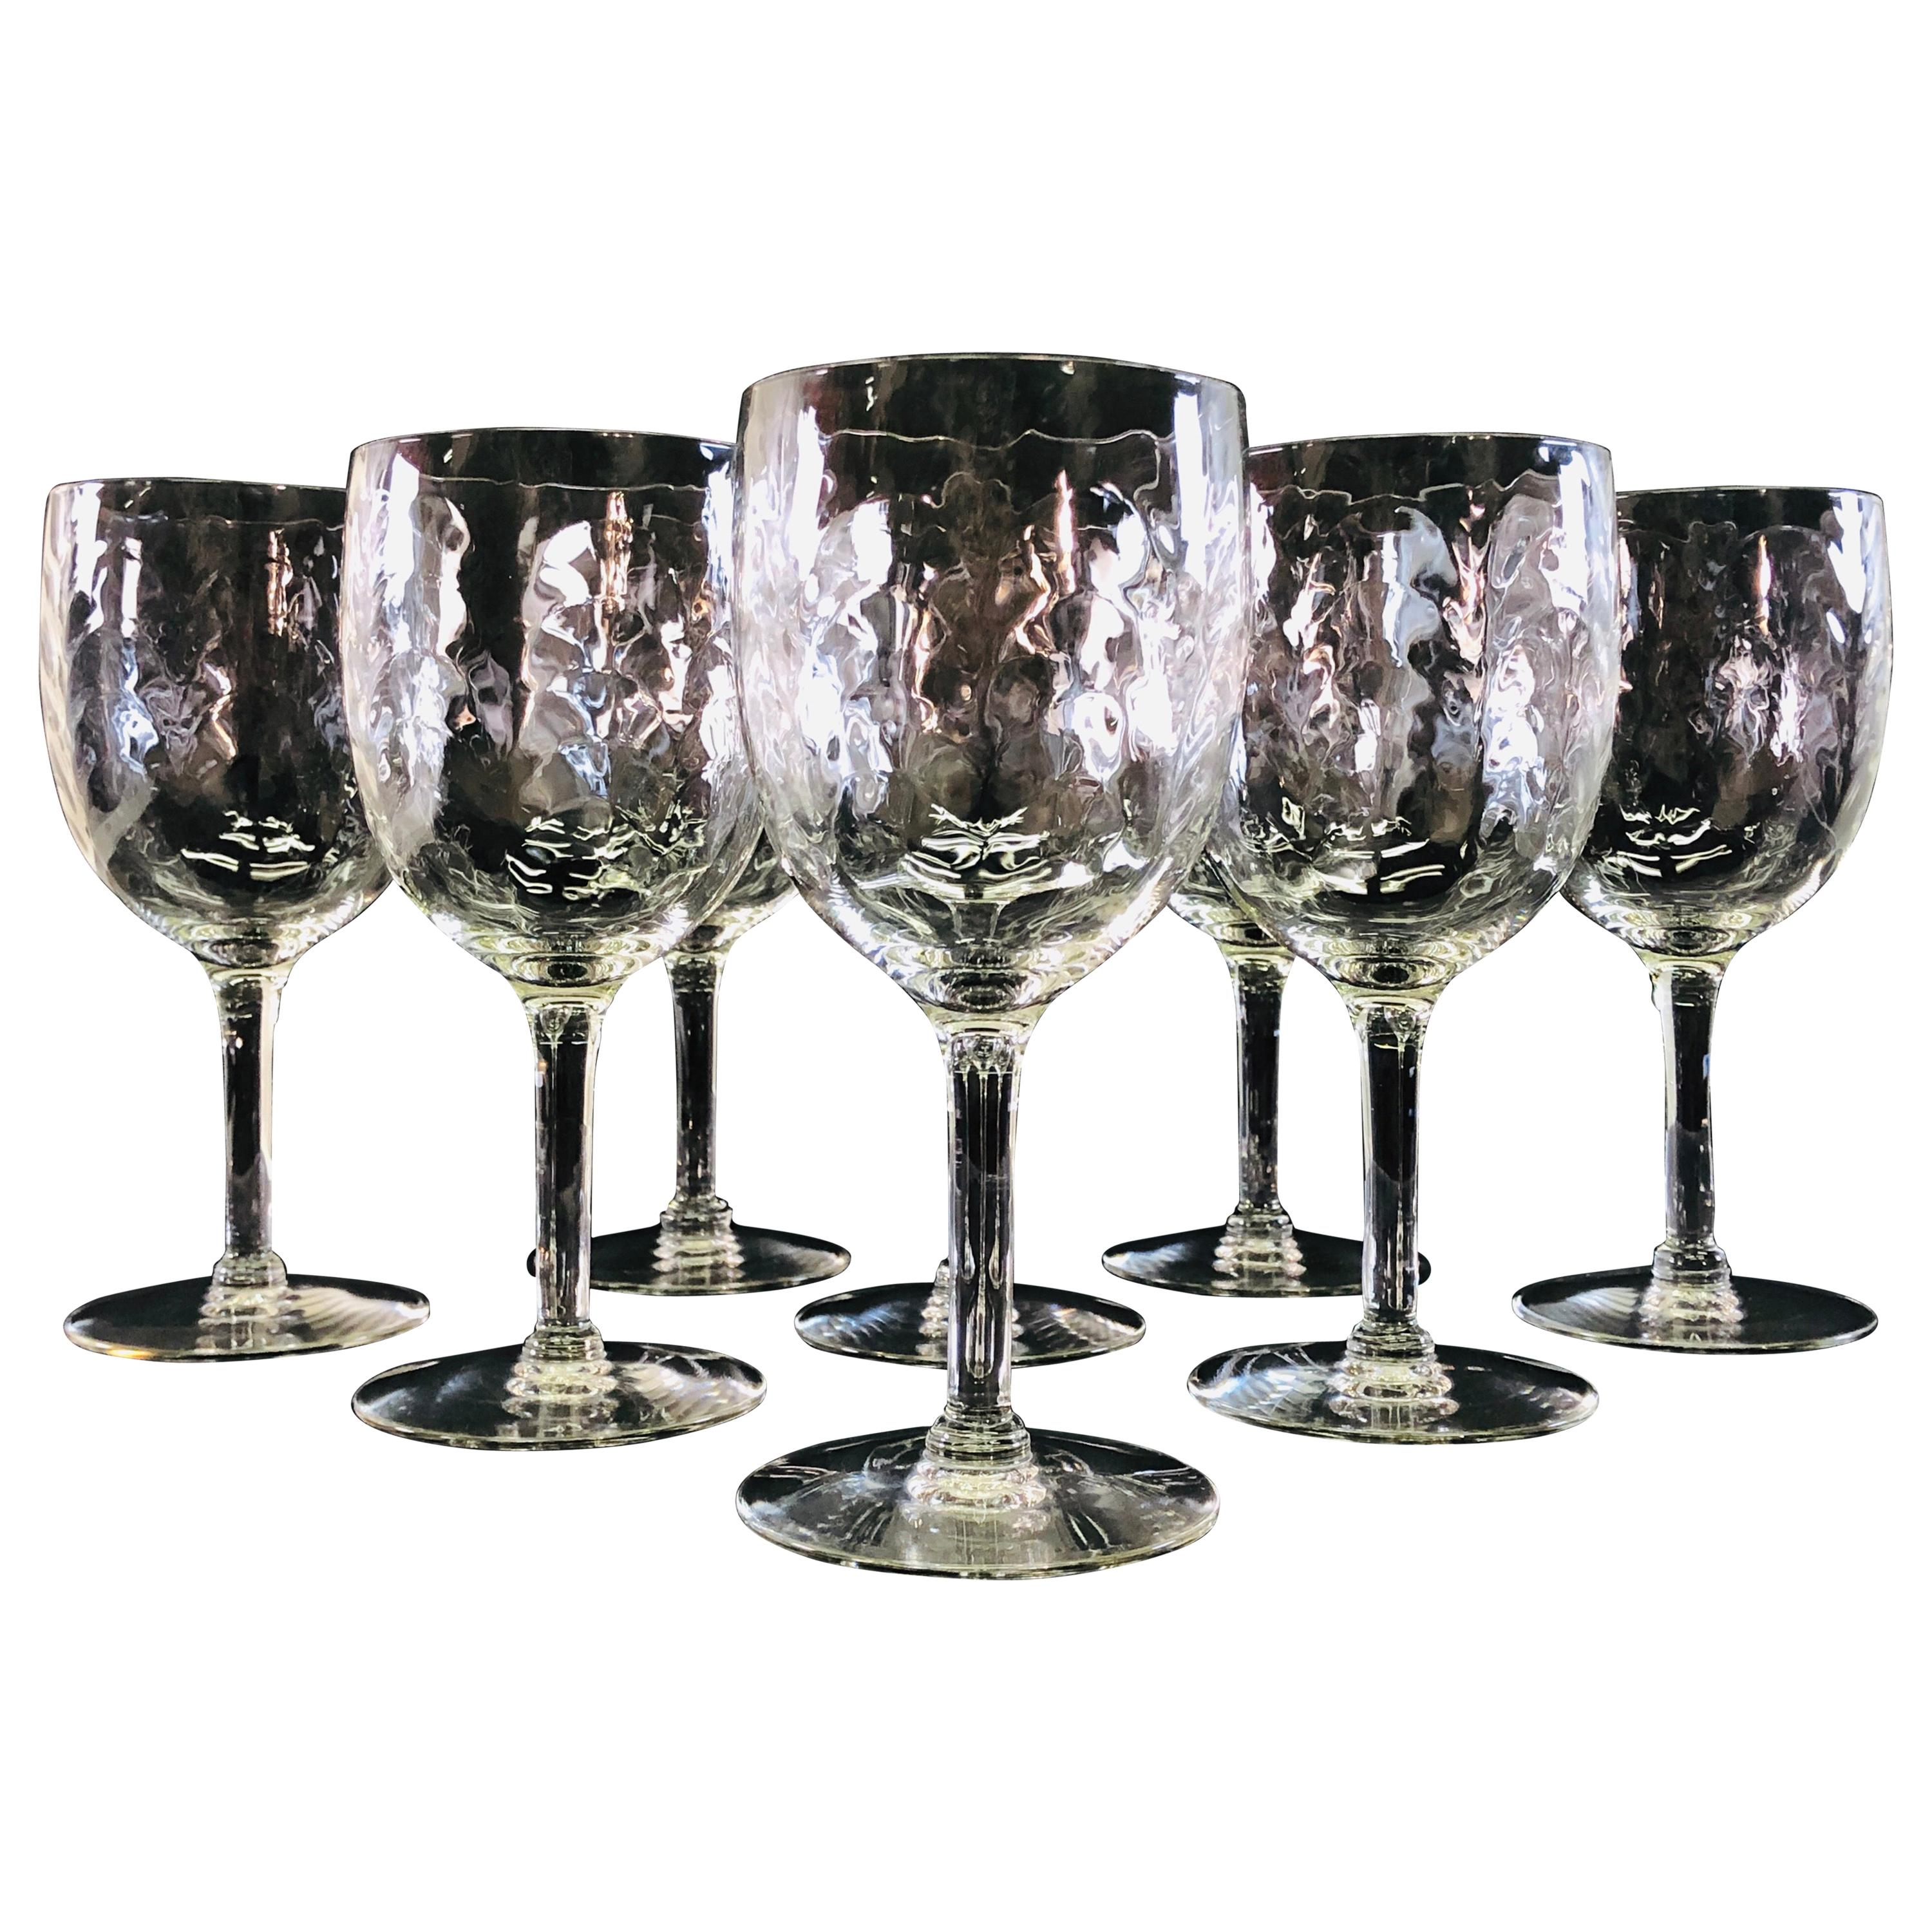 Vintage Swag Style Tall Glass Wine Stems, Set of 8